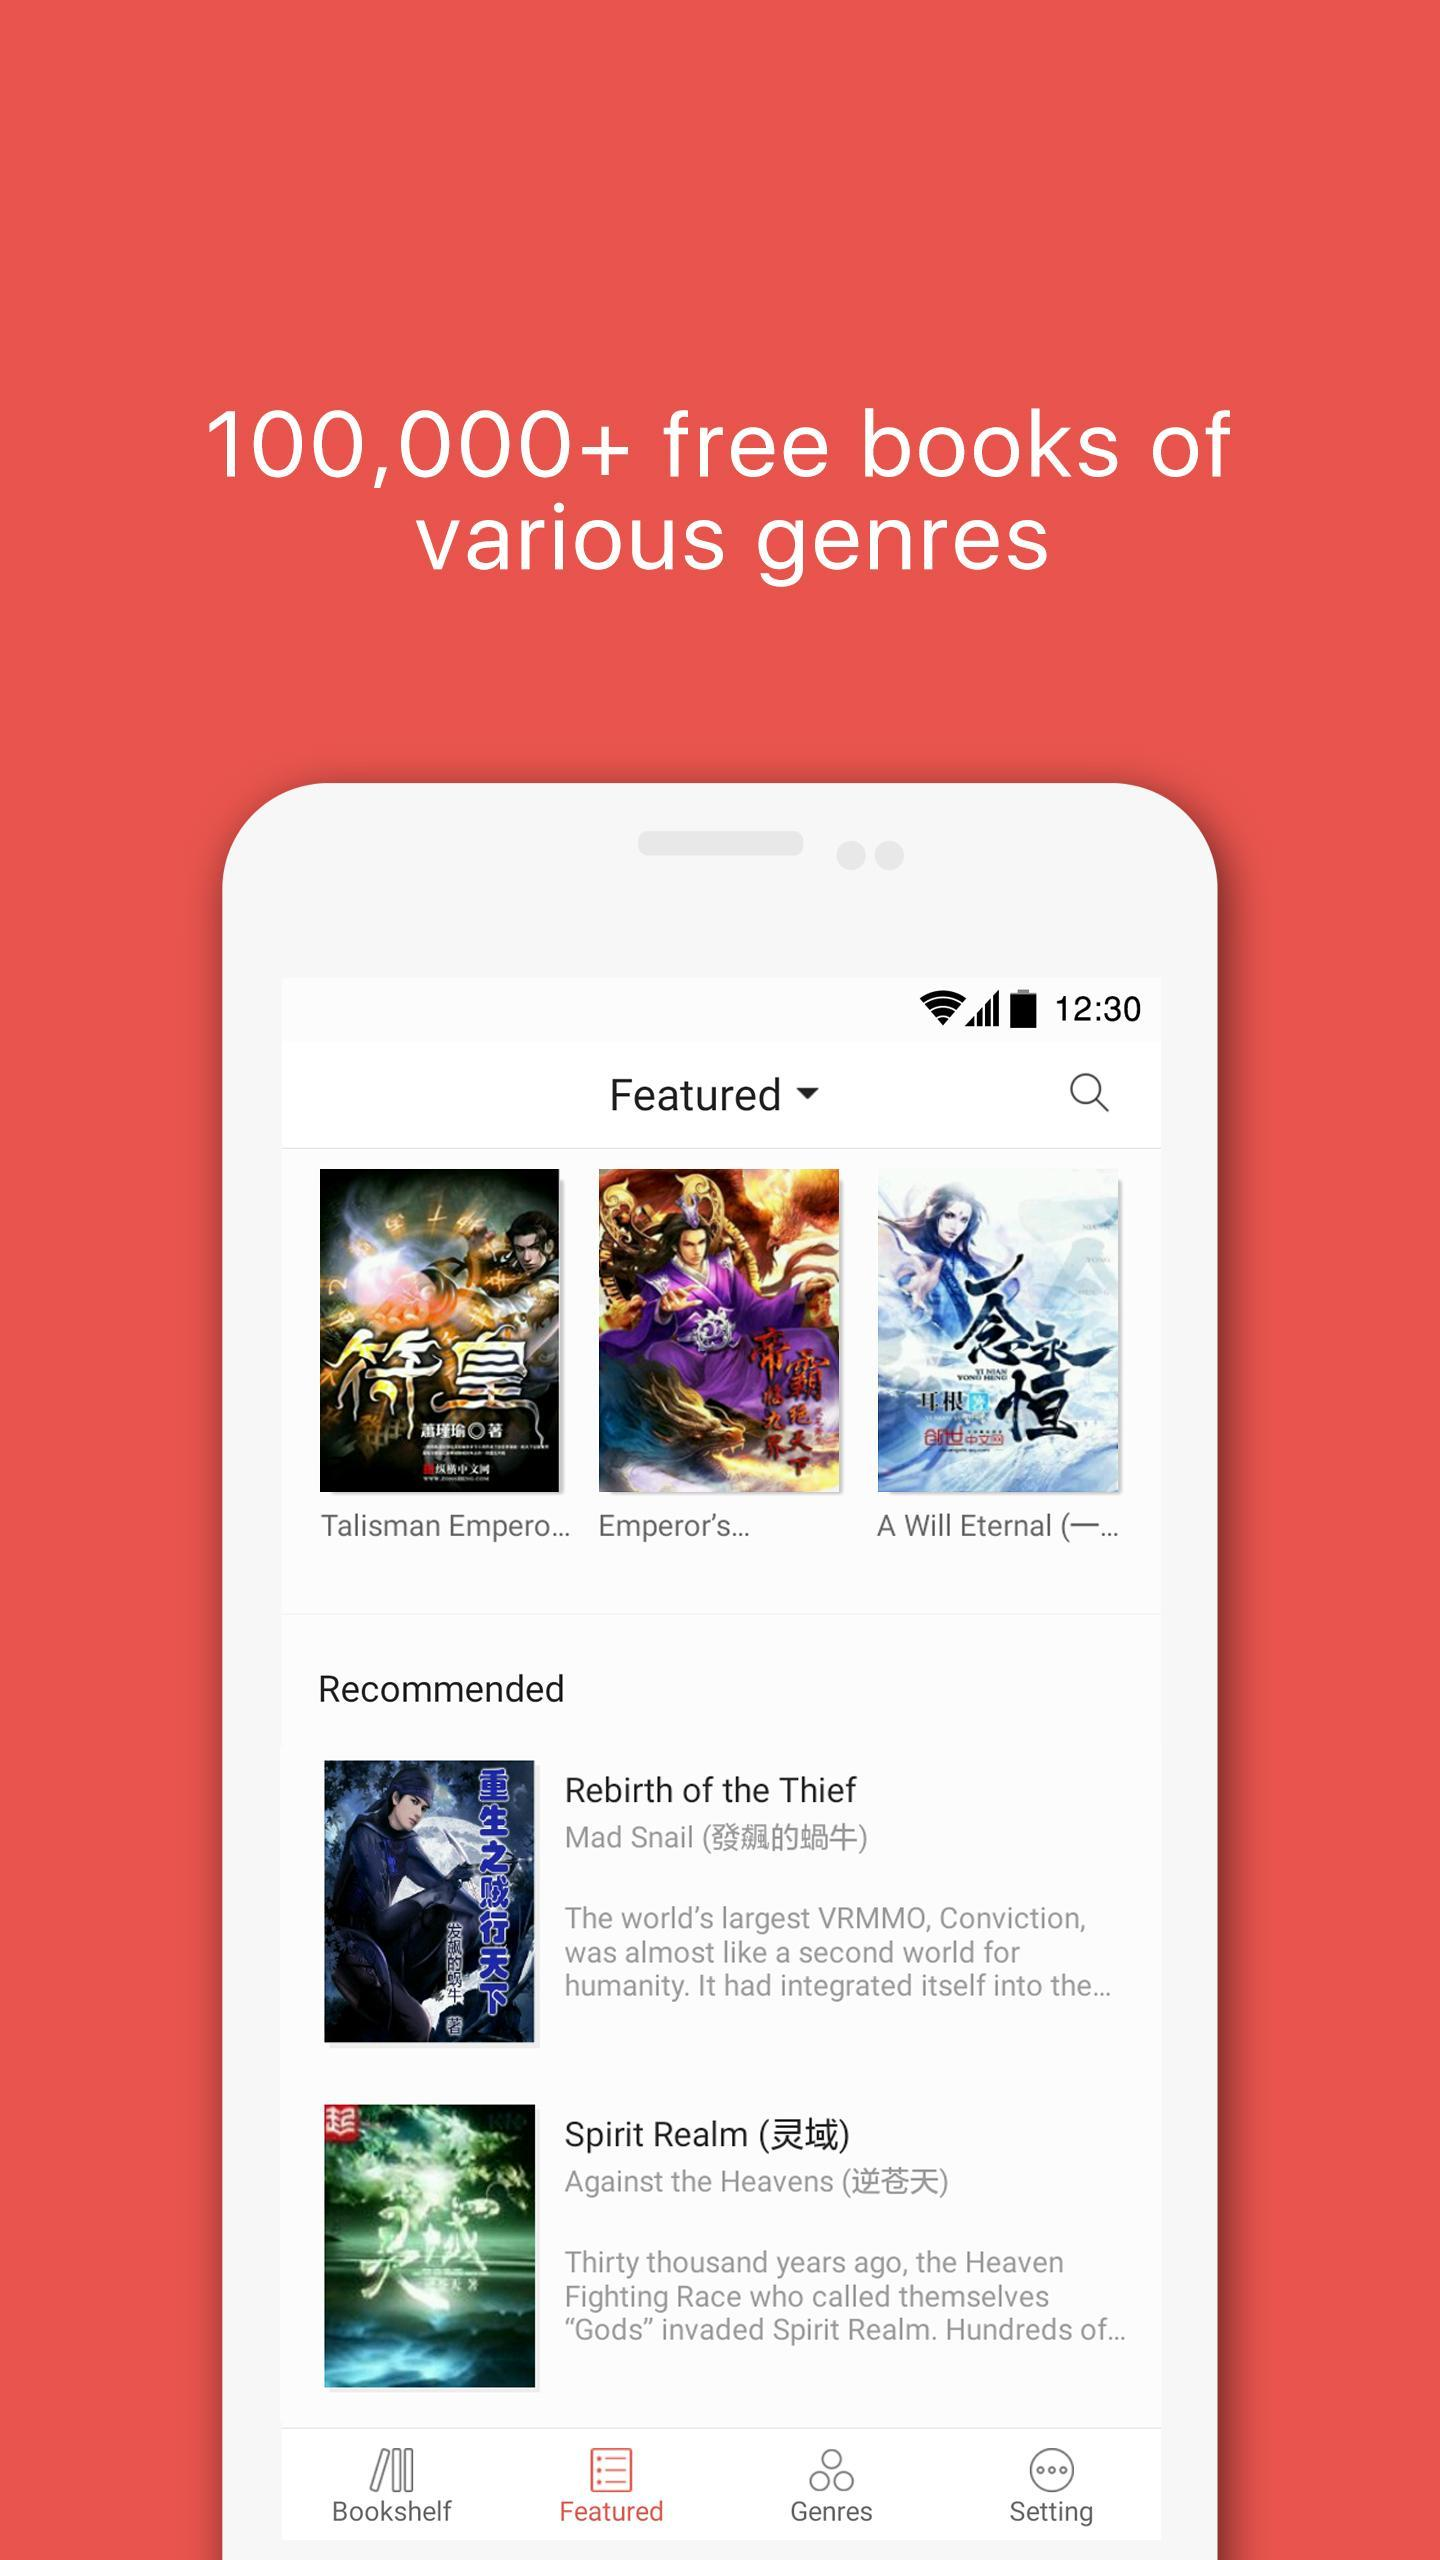 JoyRead - WuXia Novel and Free eBook Reader for Android - APK Download